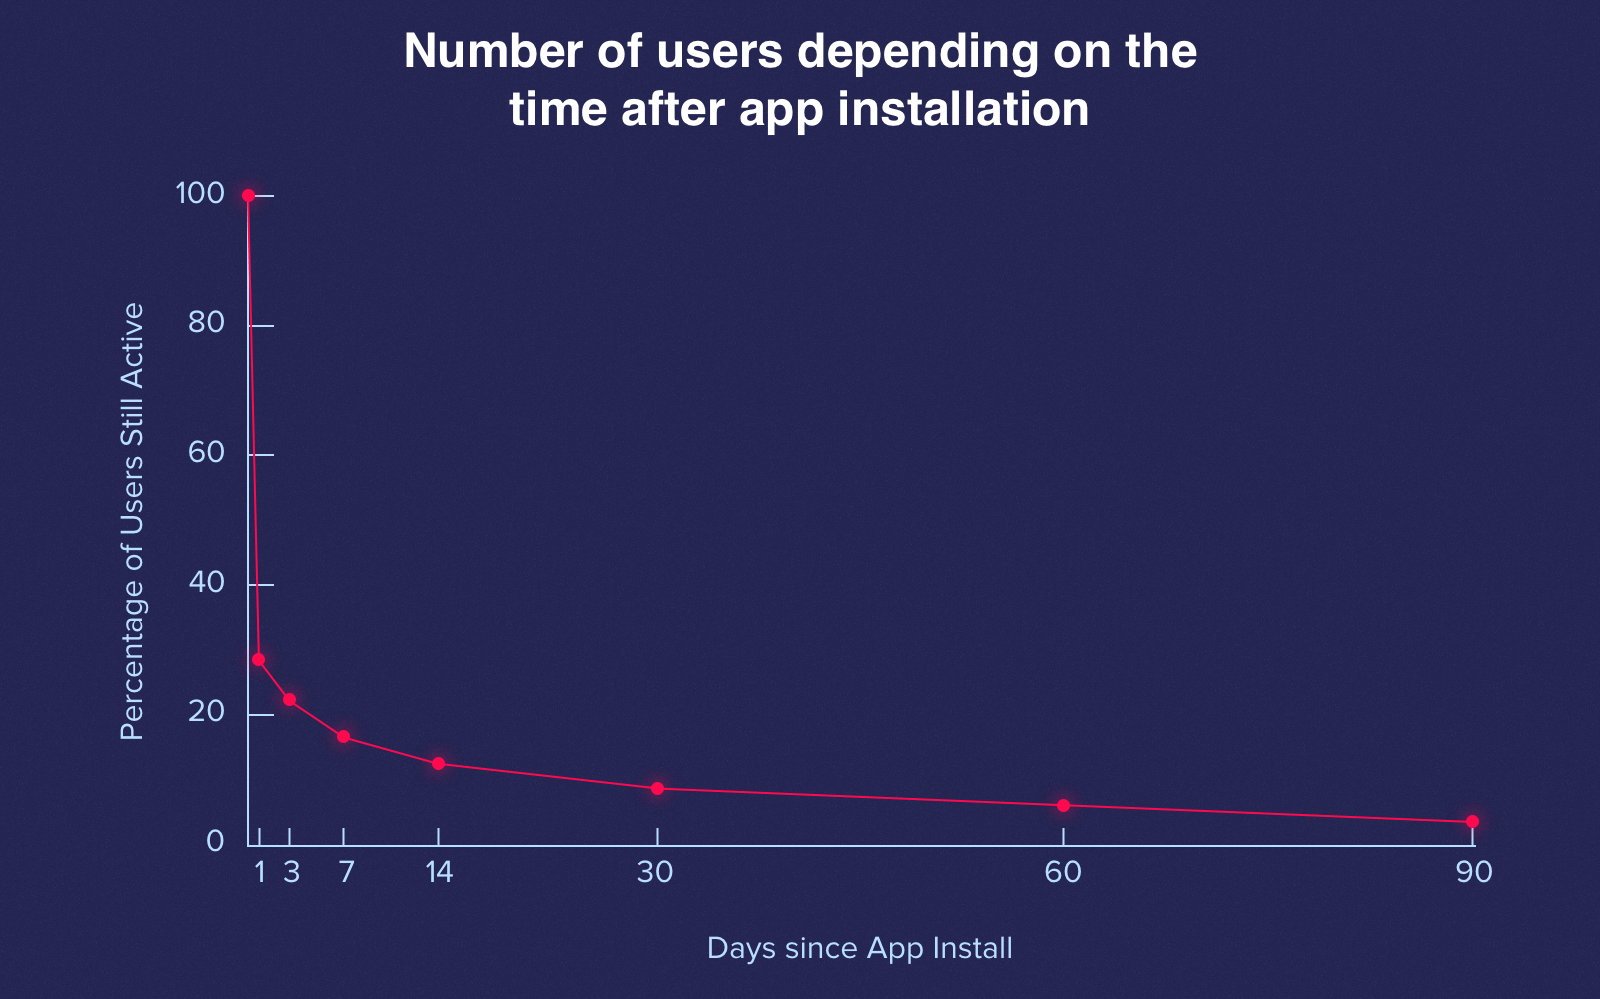 The number of users depending on the time after app installation